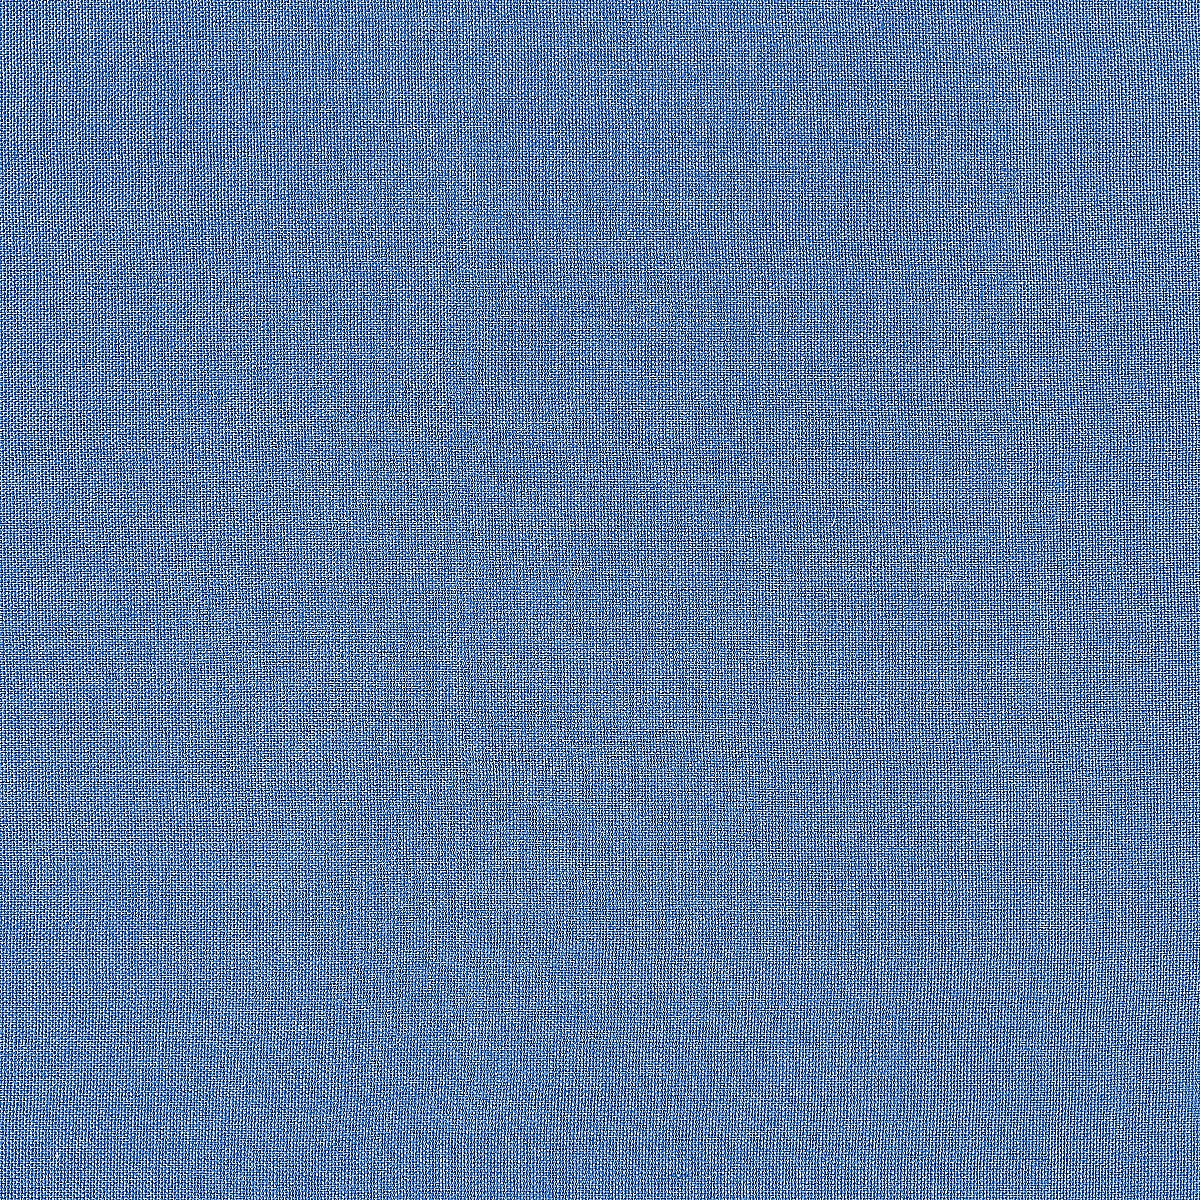 Beach House Linen: Vast Sky (fabric yardage)